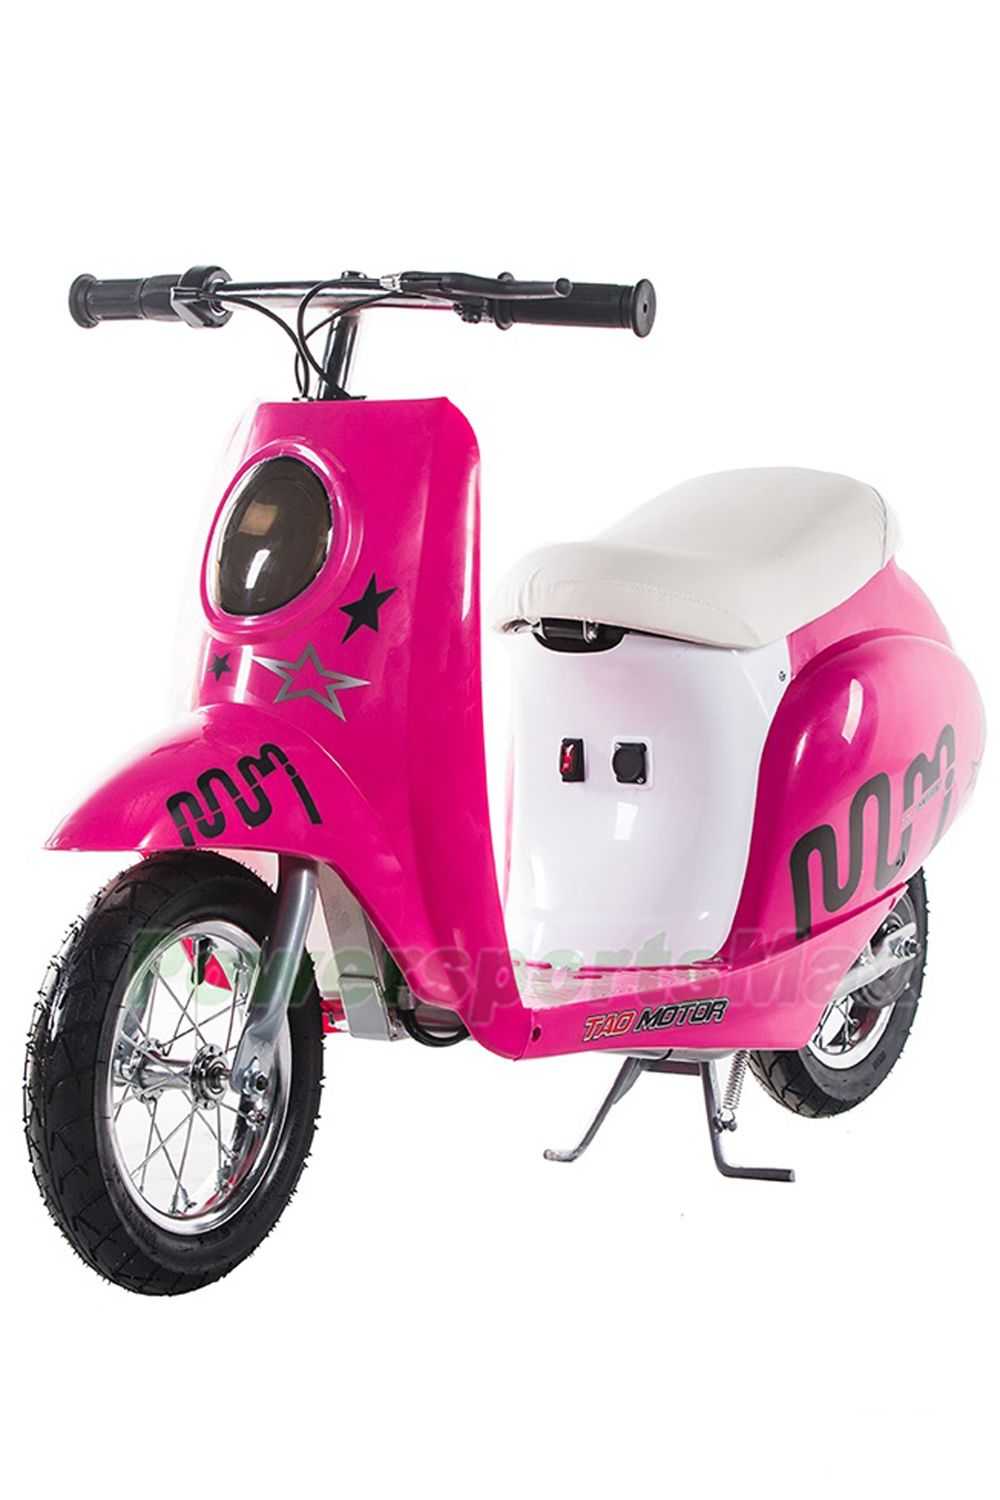 MC-T29 Taotao 250W Electric Comet Scooter with Chain Drive